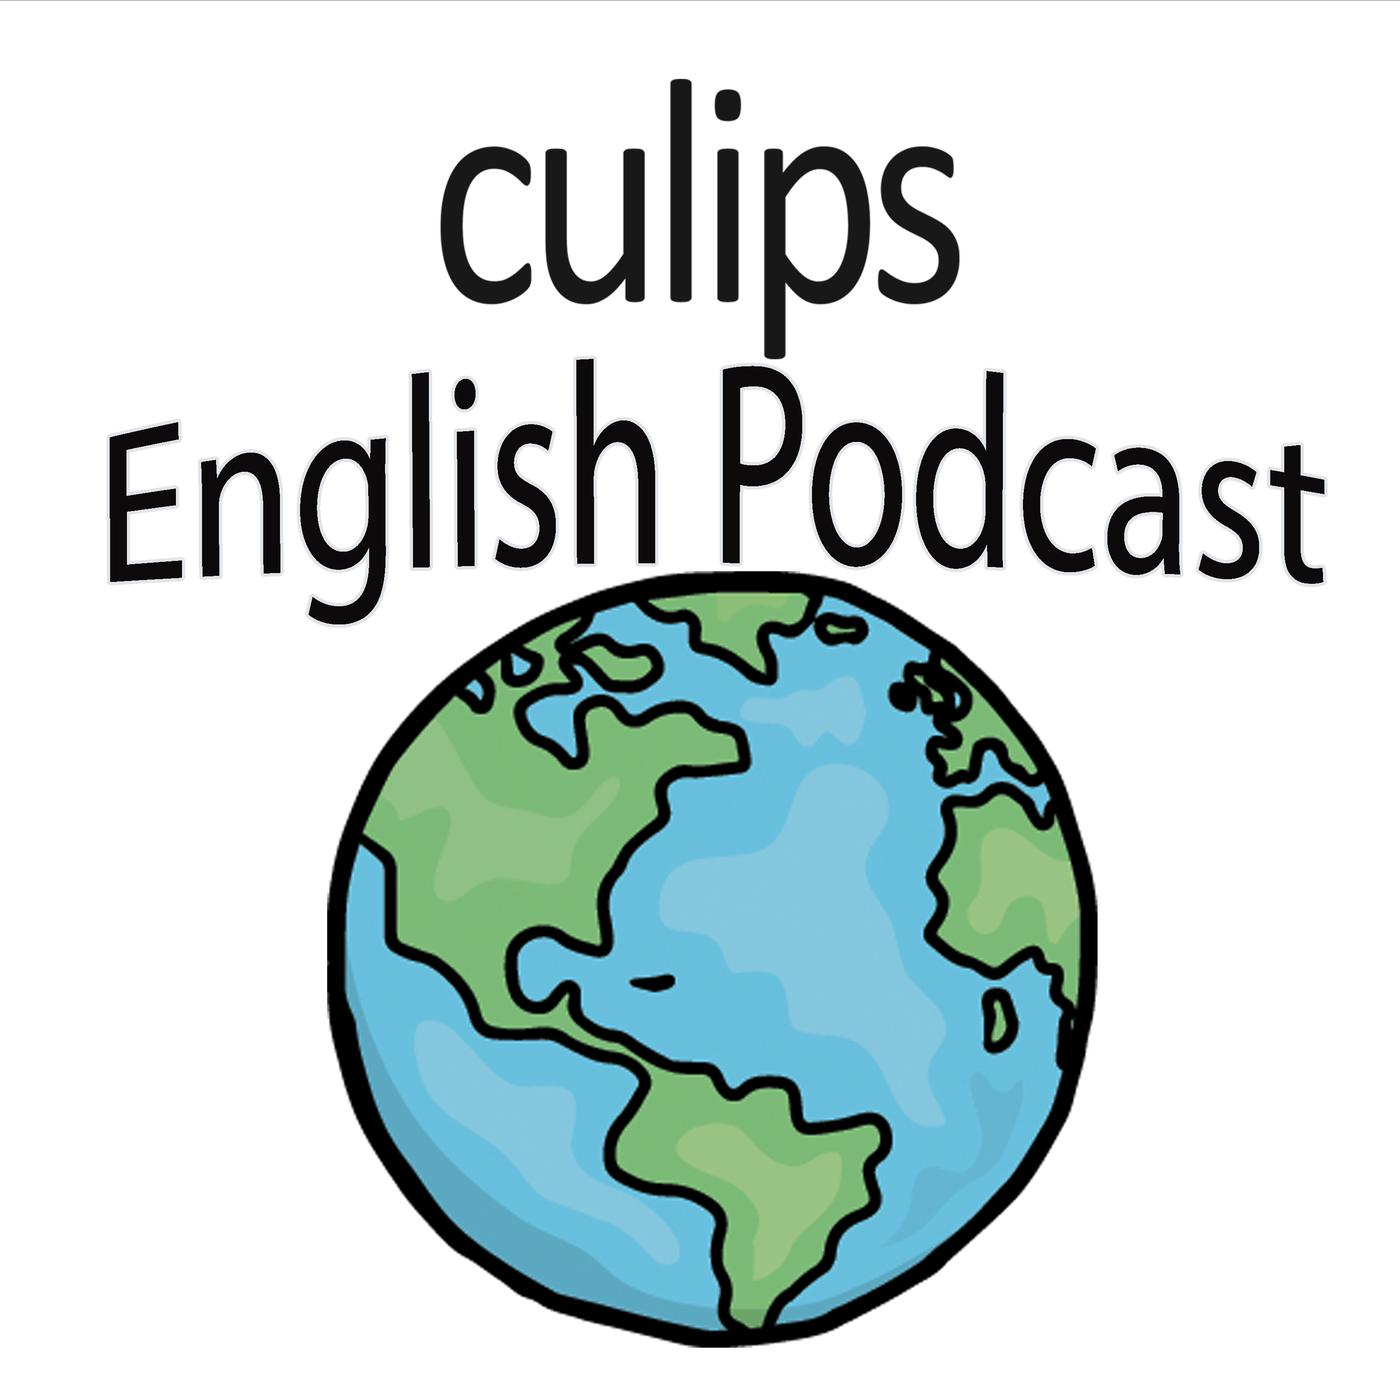 Improve your English conversation, vocabulary, grammar, and speaking